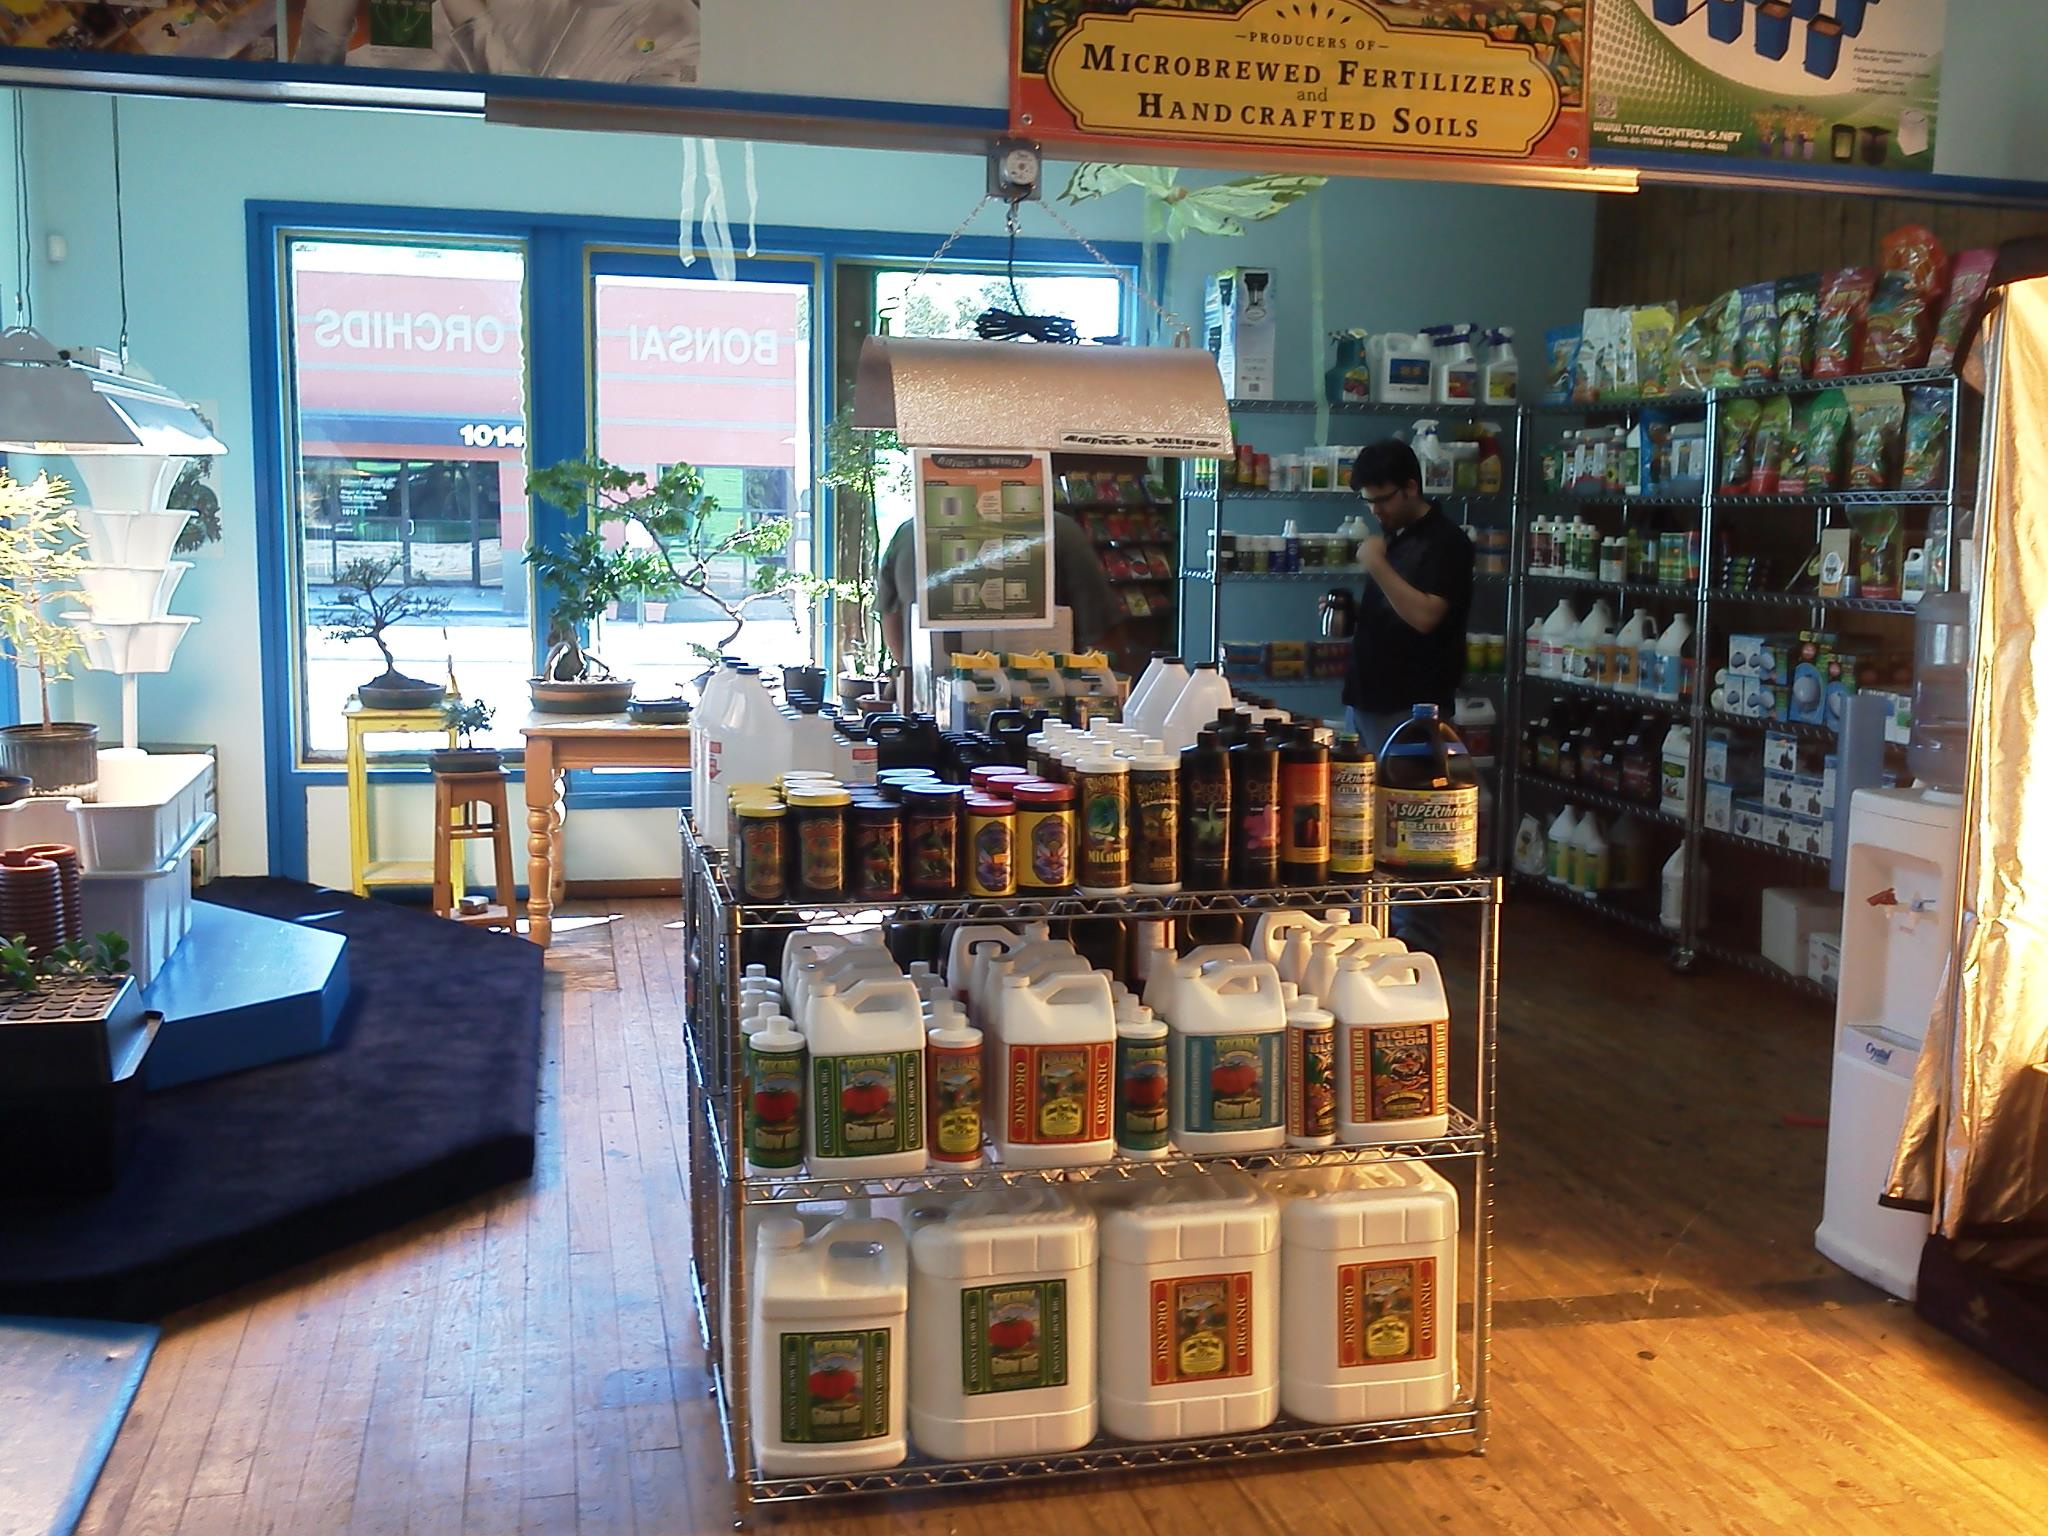 Hydroponic Gardening Supply Store